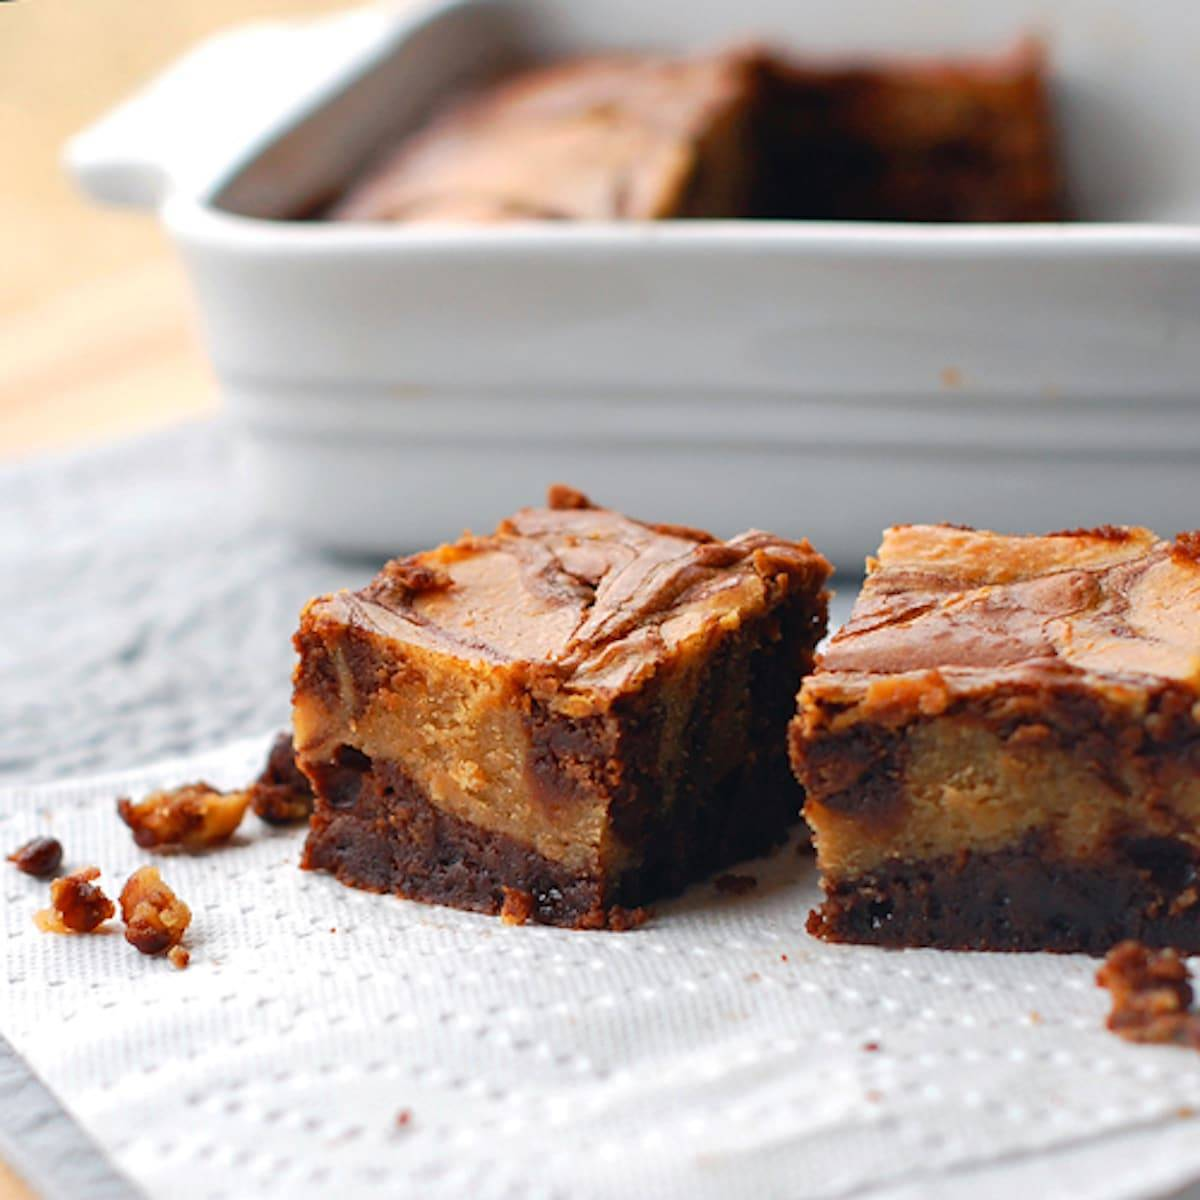 Peanut butter cheesecake brownies on a napkin.